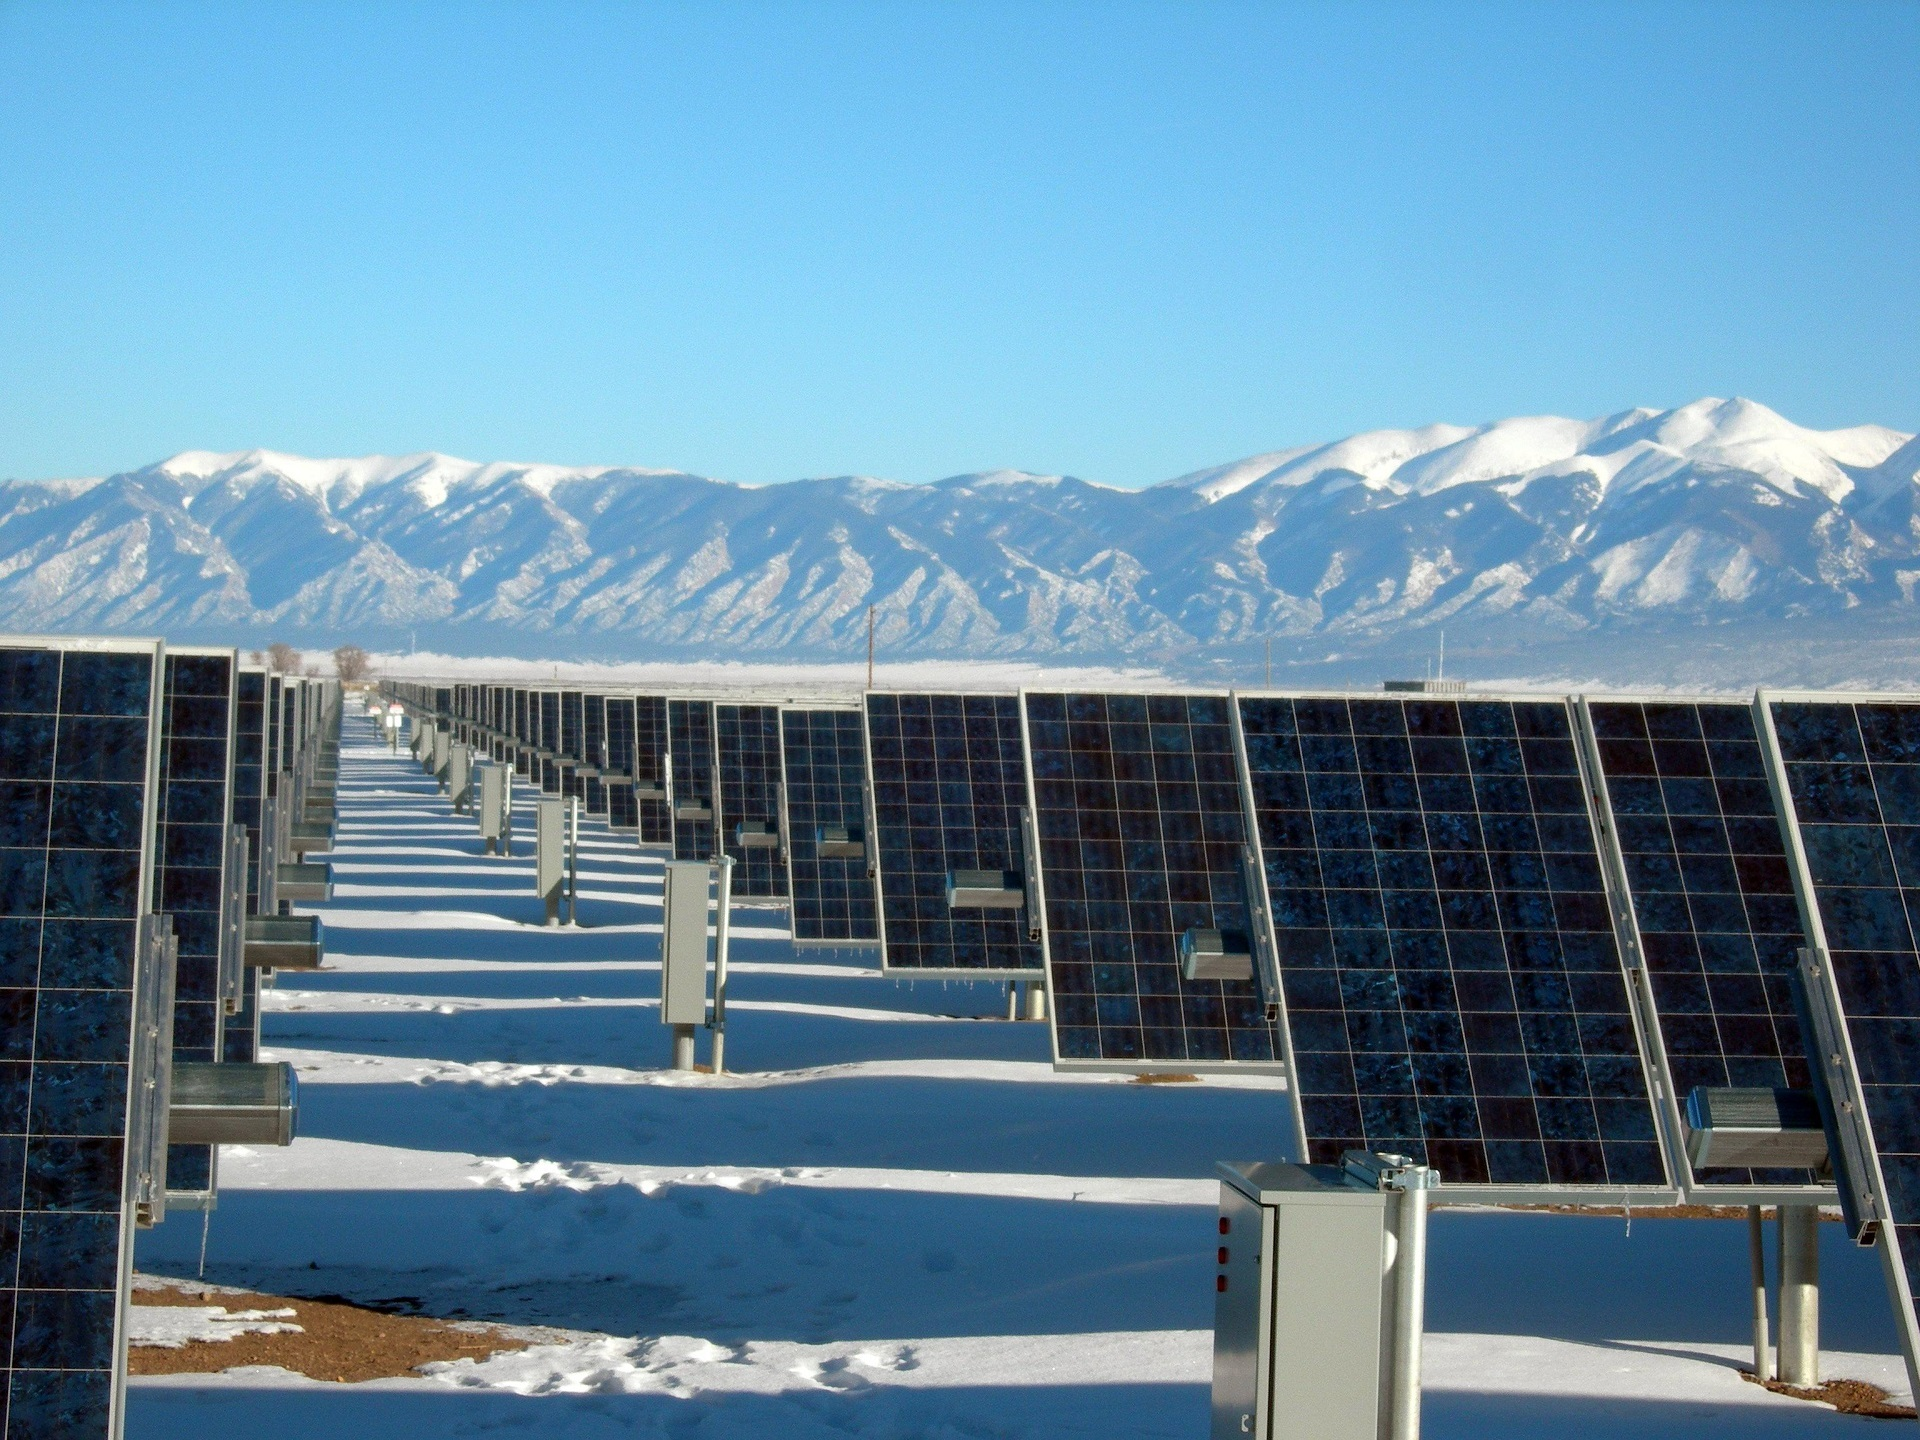 solar-panel-array-power-plant-electricit